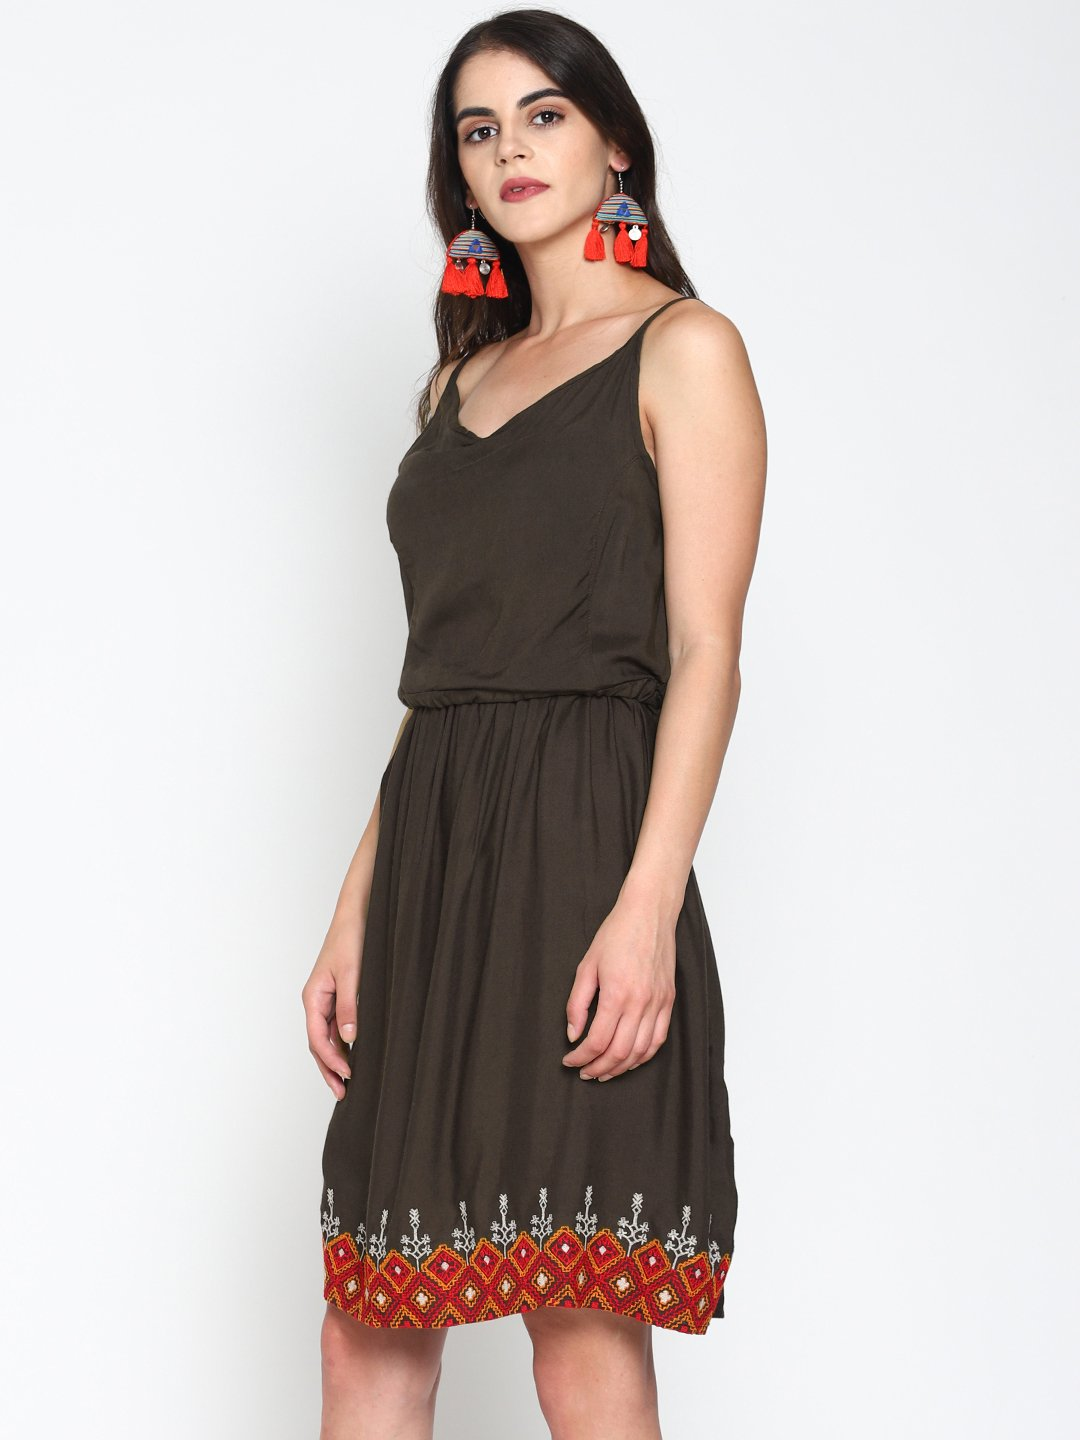 Skater Dress With Embroidered Border | UNTUNG